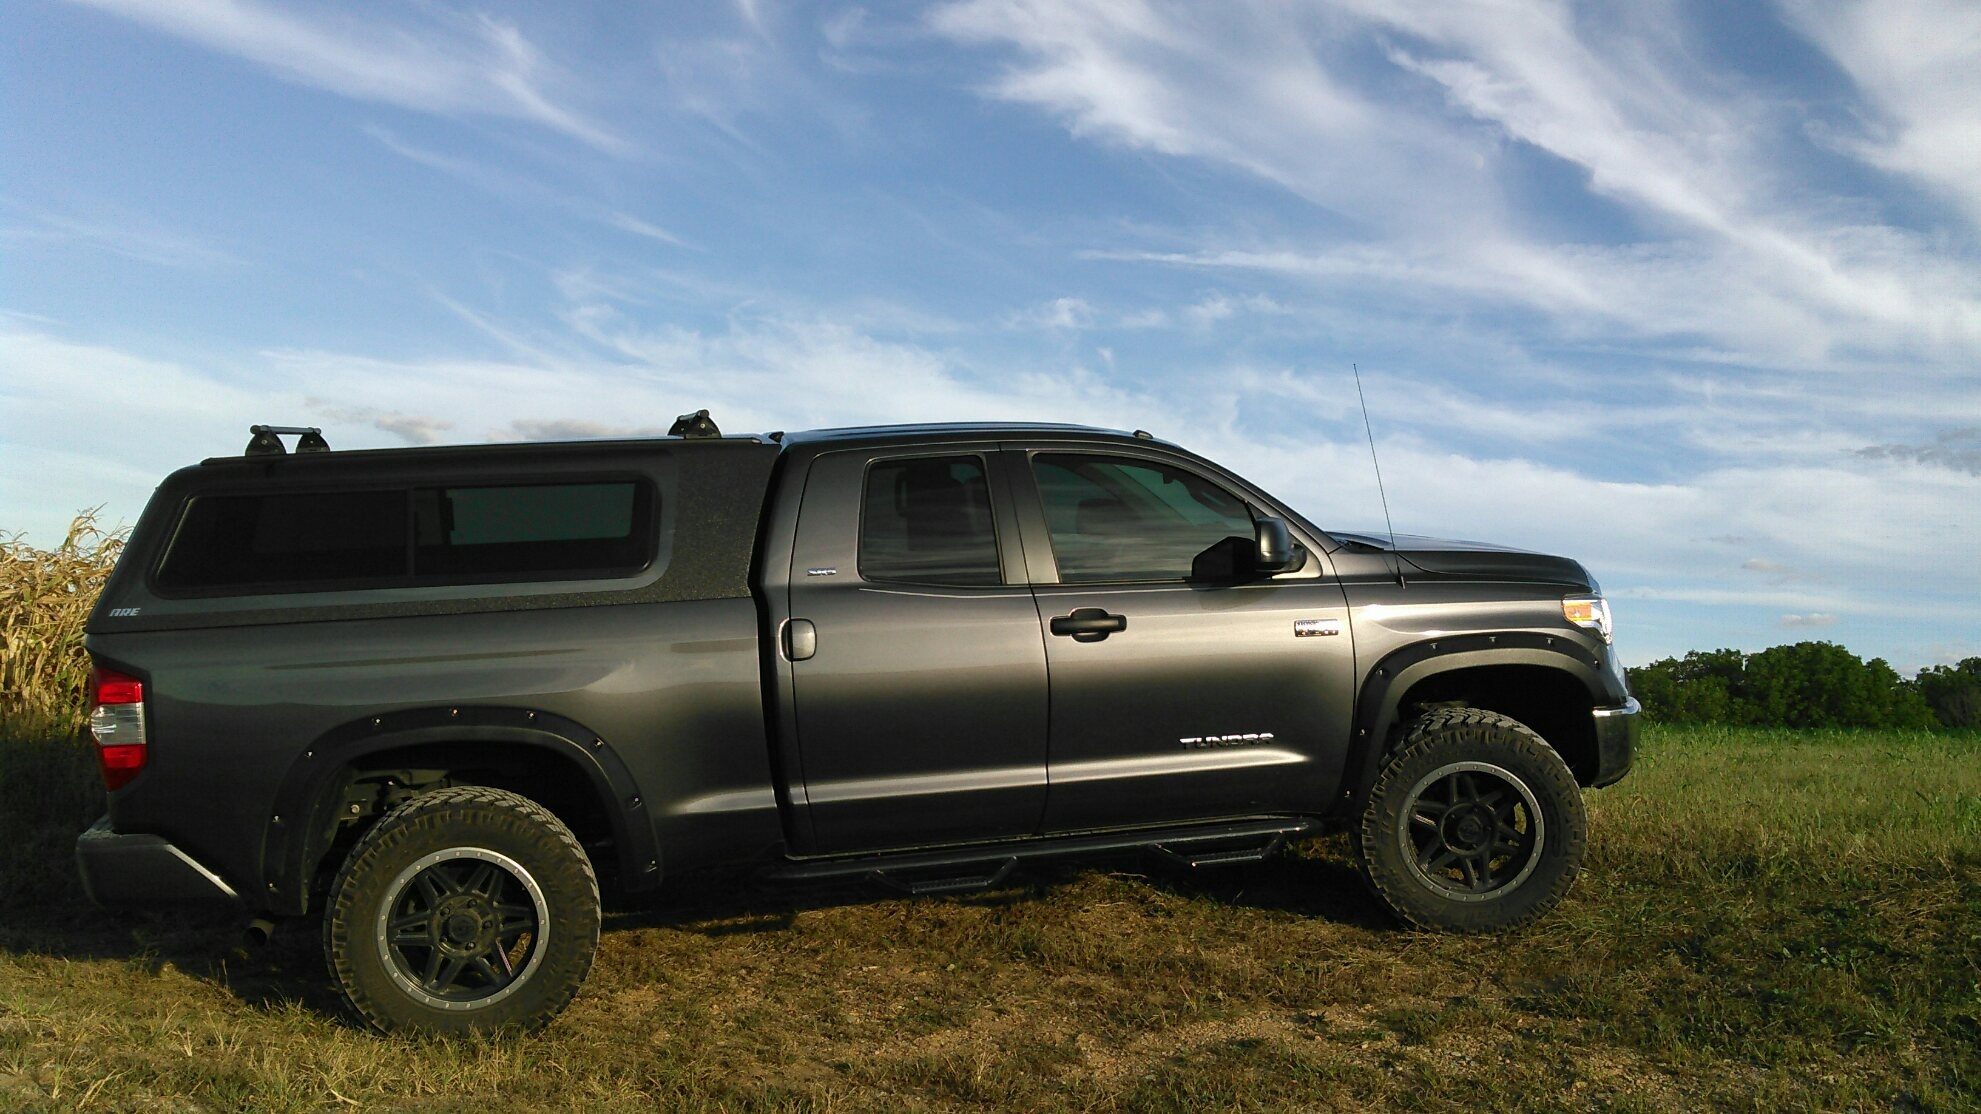 2016 Tundra Double Cab With An Are Overland Series